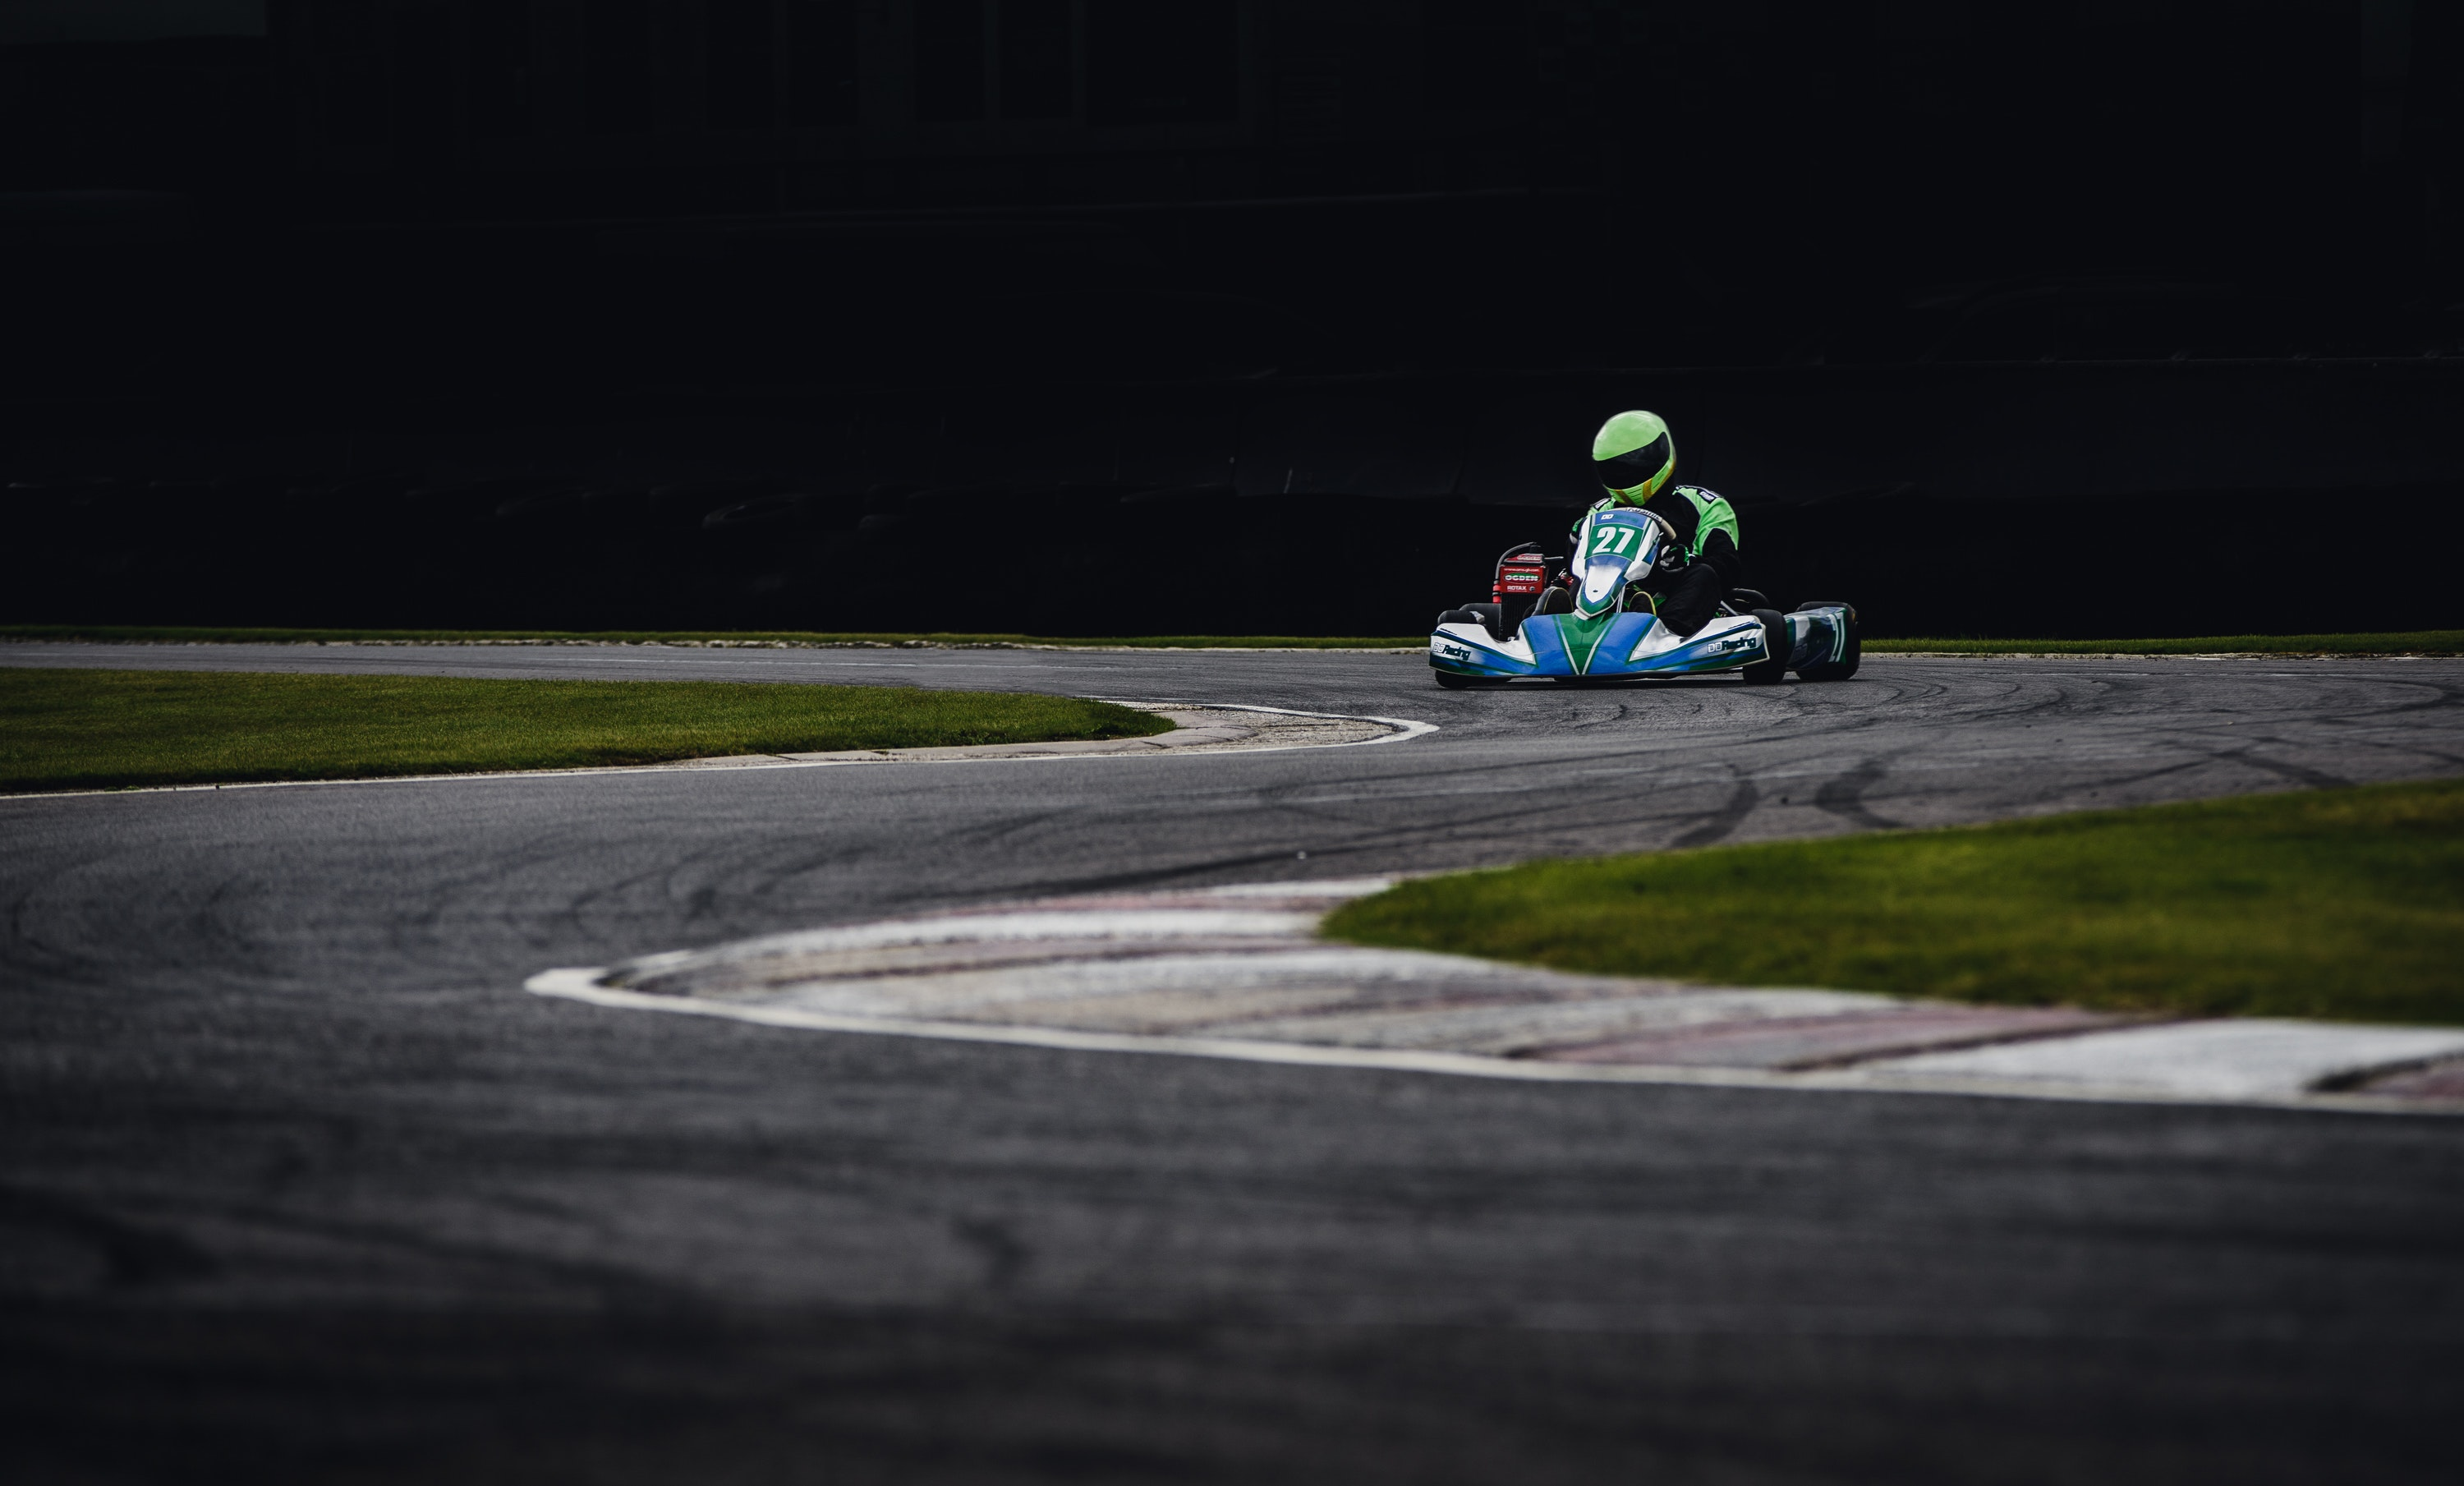 Man Wearing Green Helmet Riding Go Kart, Action, Outdoors, Vehicle, Track, HQ Photo